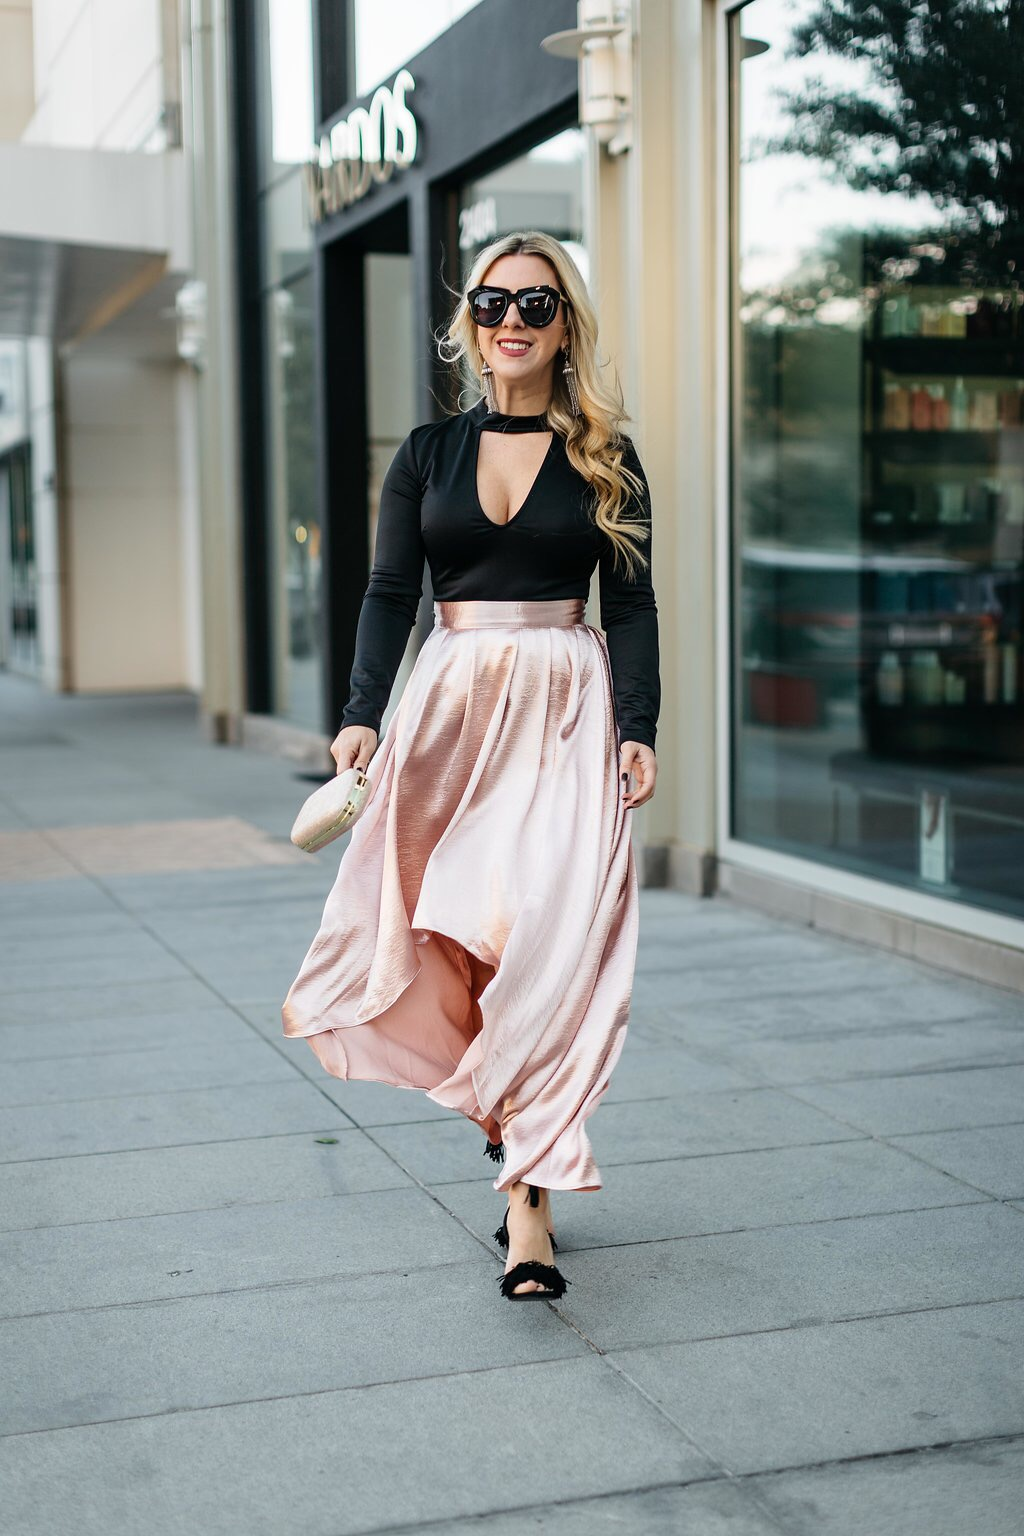 Pink Pleated Skirt | The Darling Petite Diva